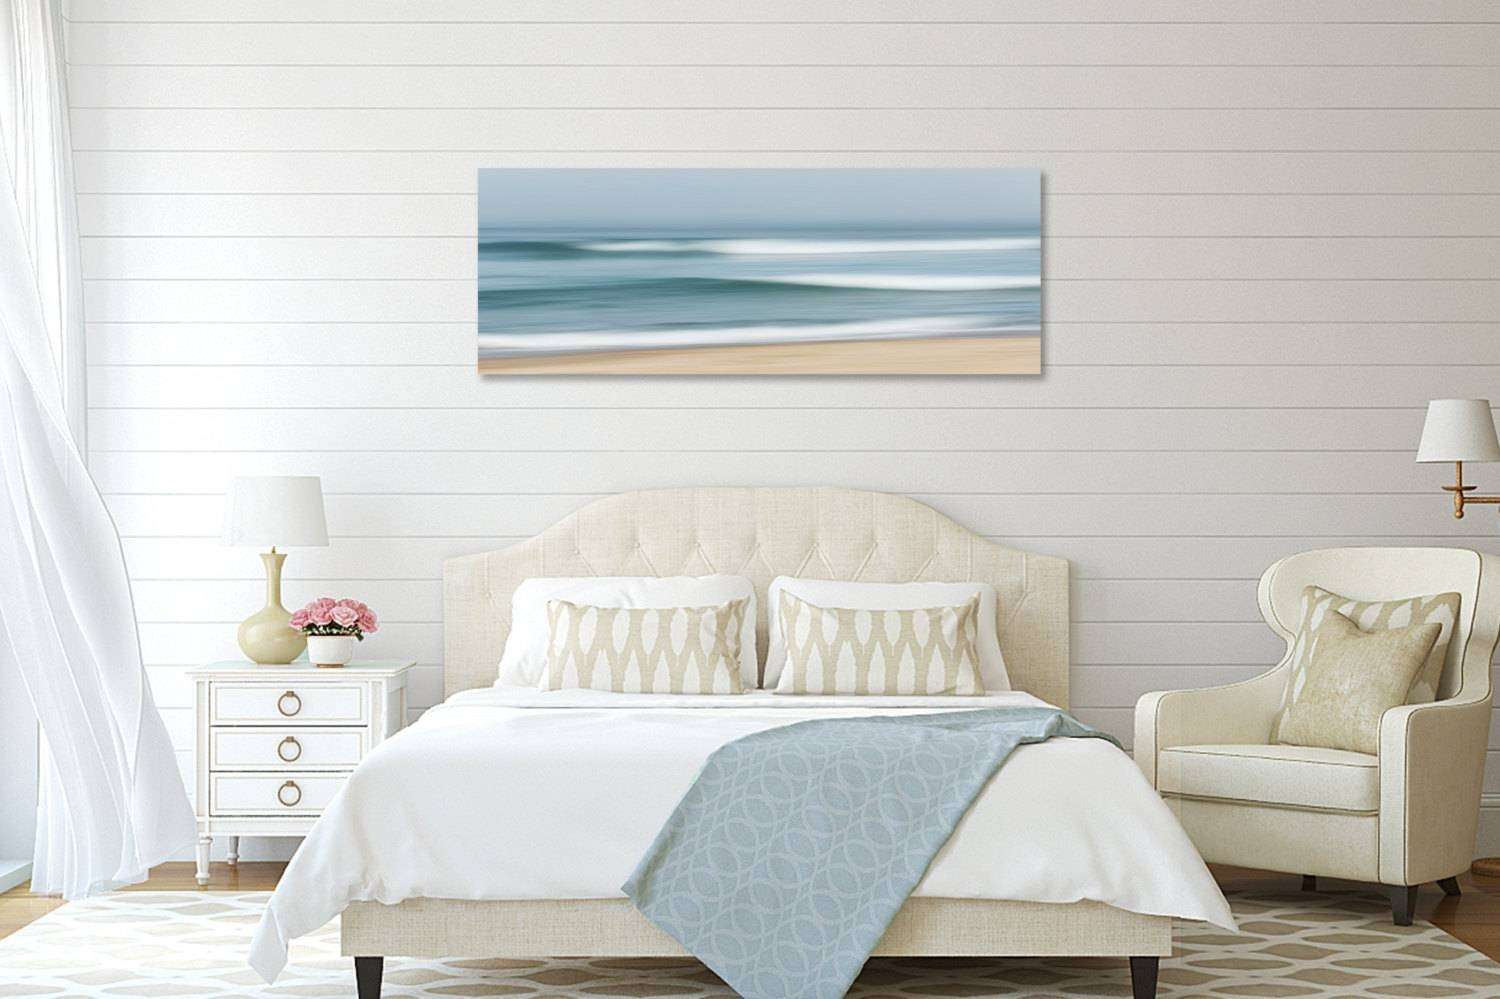 Coastal Wall Decor Large Abstract Beach Canvas Wall Art Throughout Newest Coastal Wall Art Canvas (View 5 of 20)